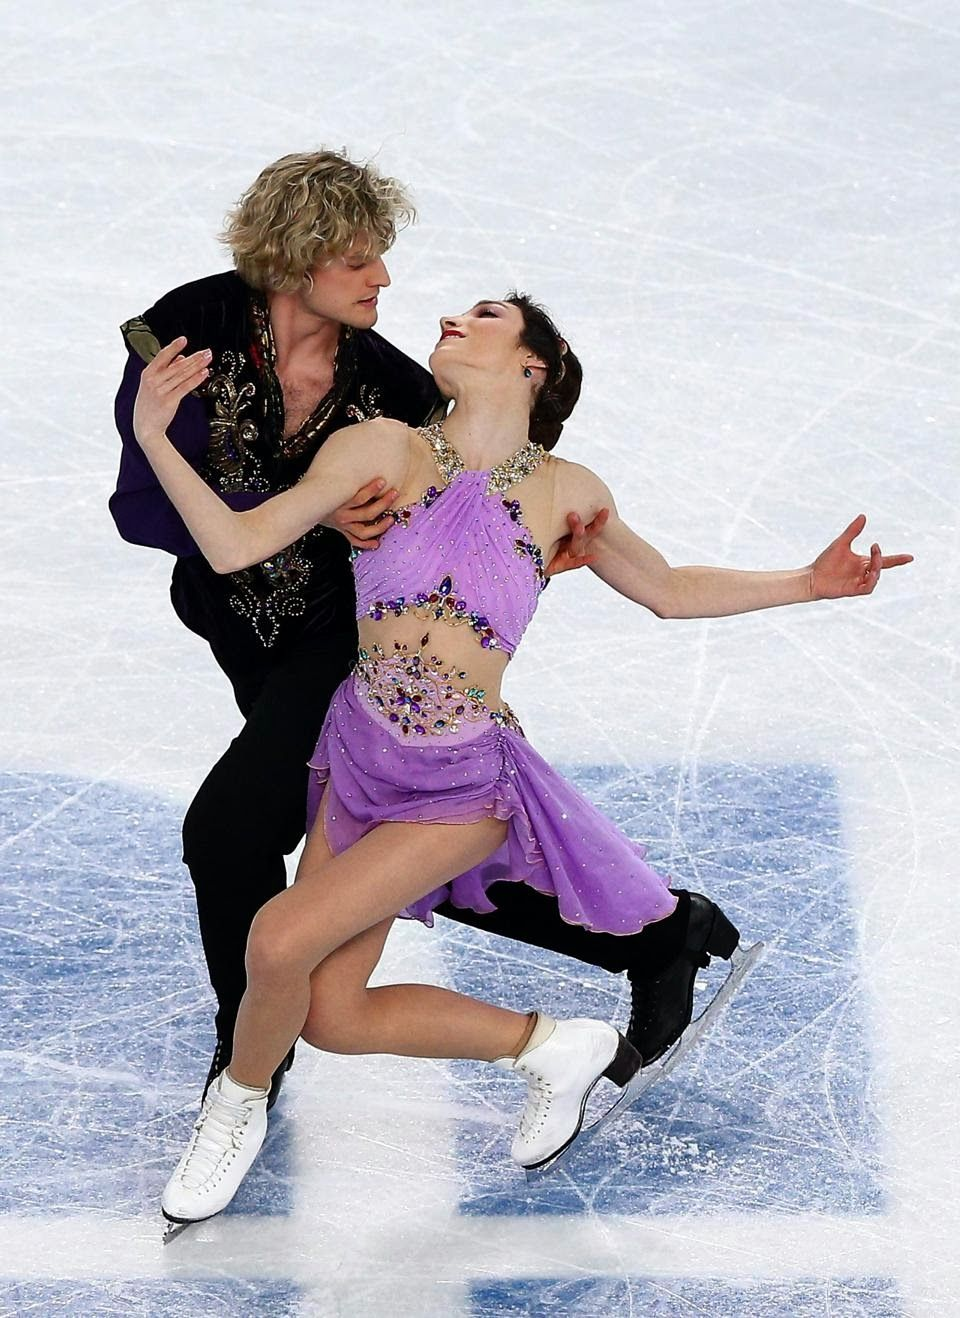 1. They re the First U.S. Team to Win Gold in Ice Dancing